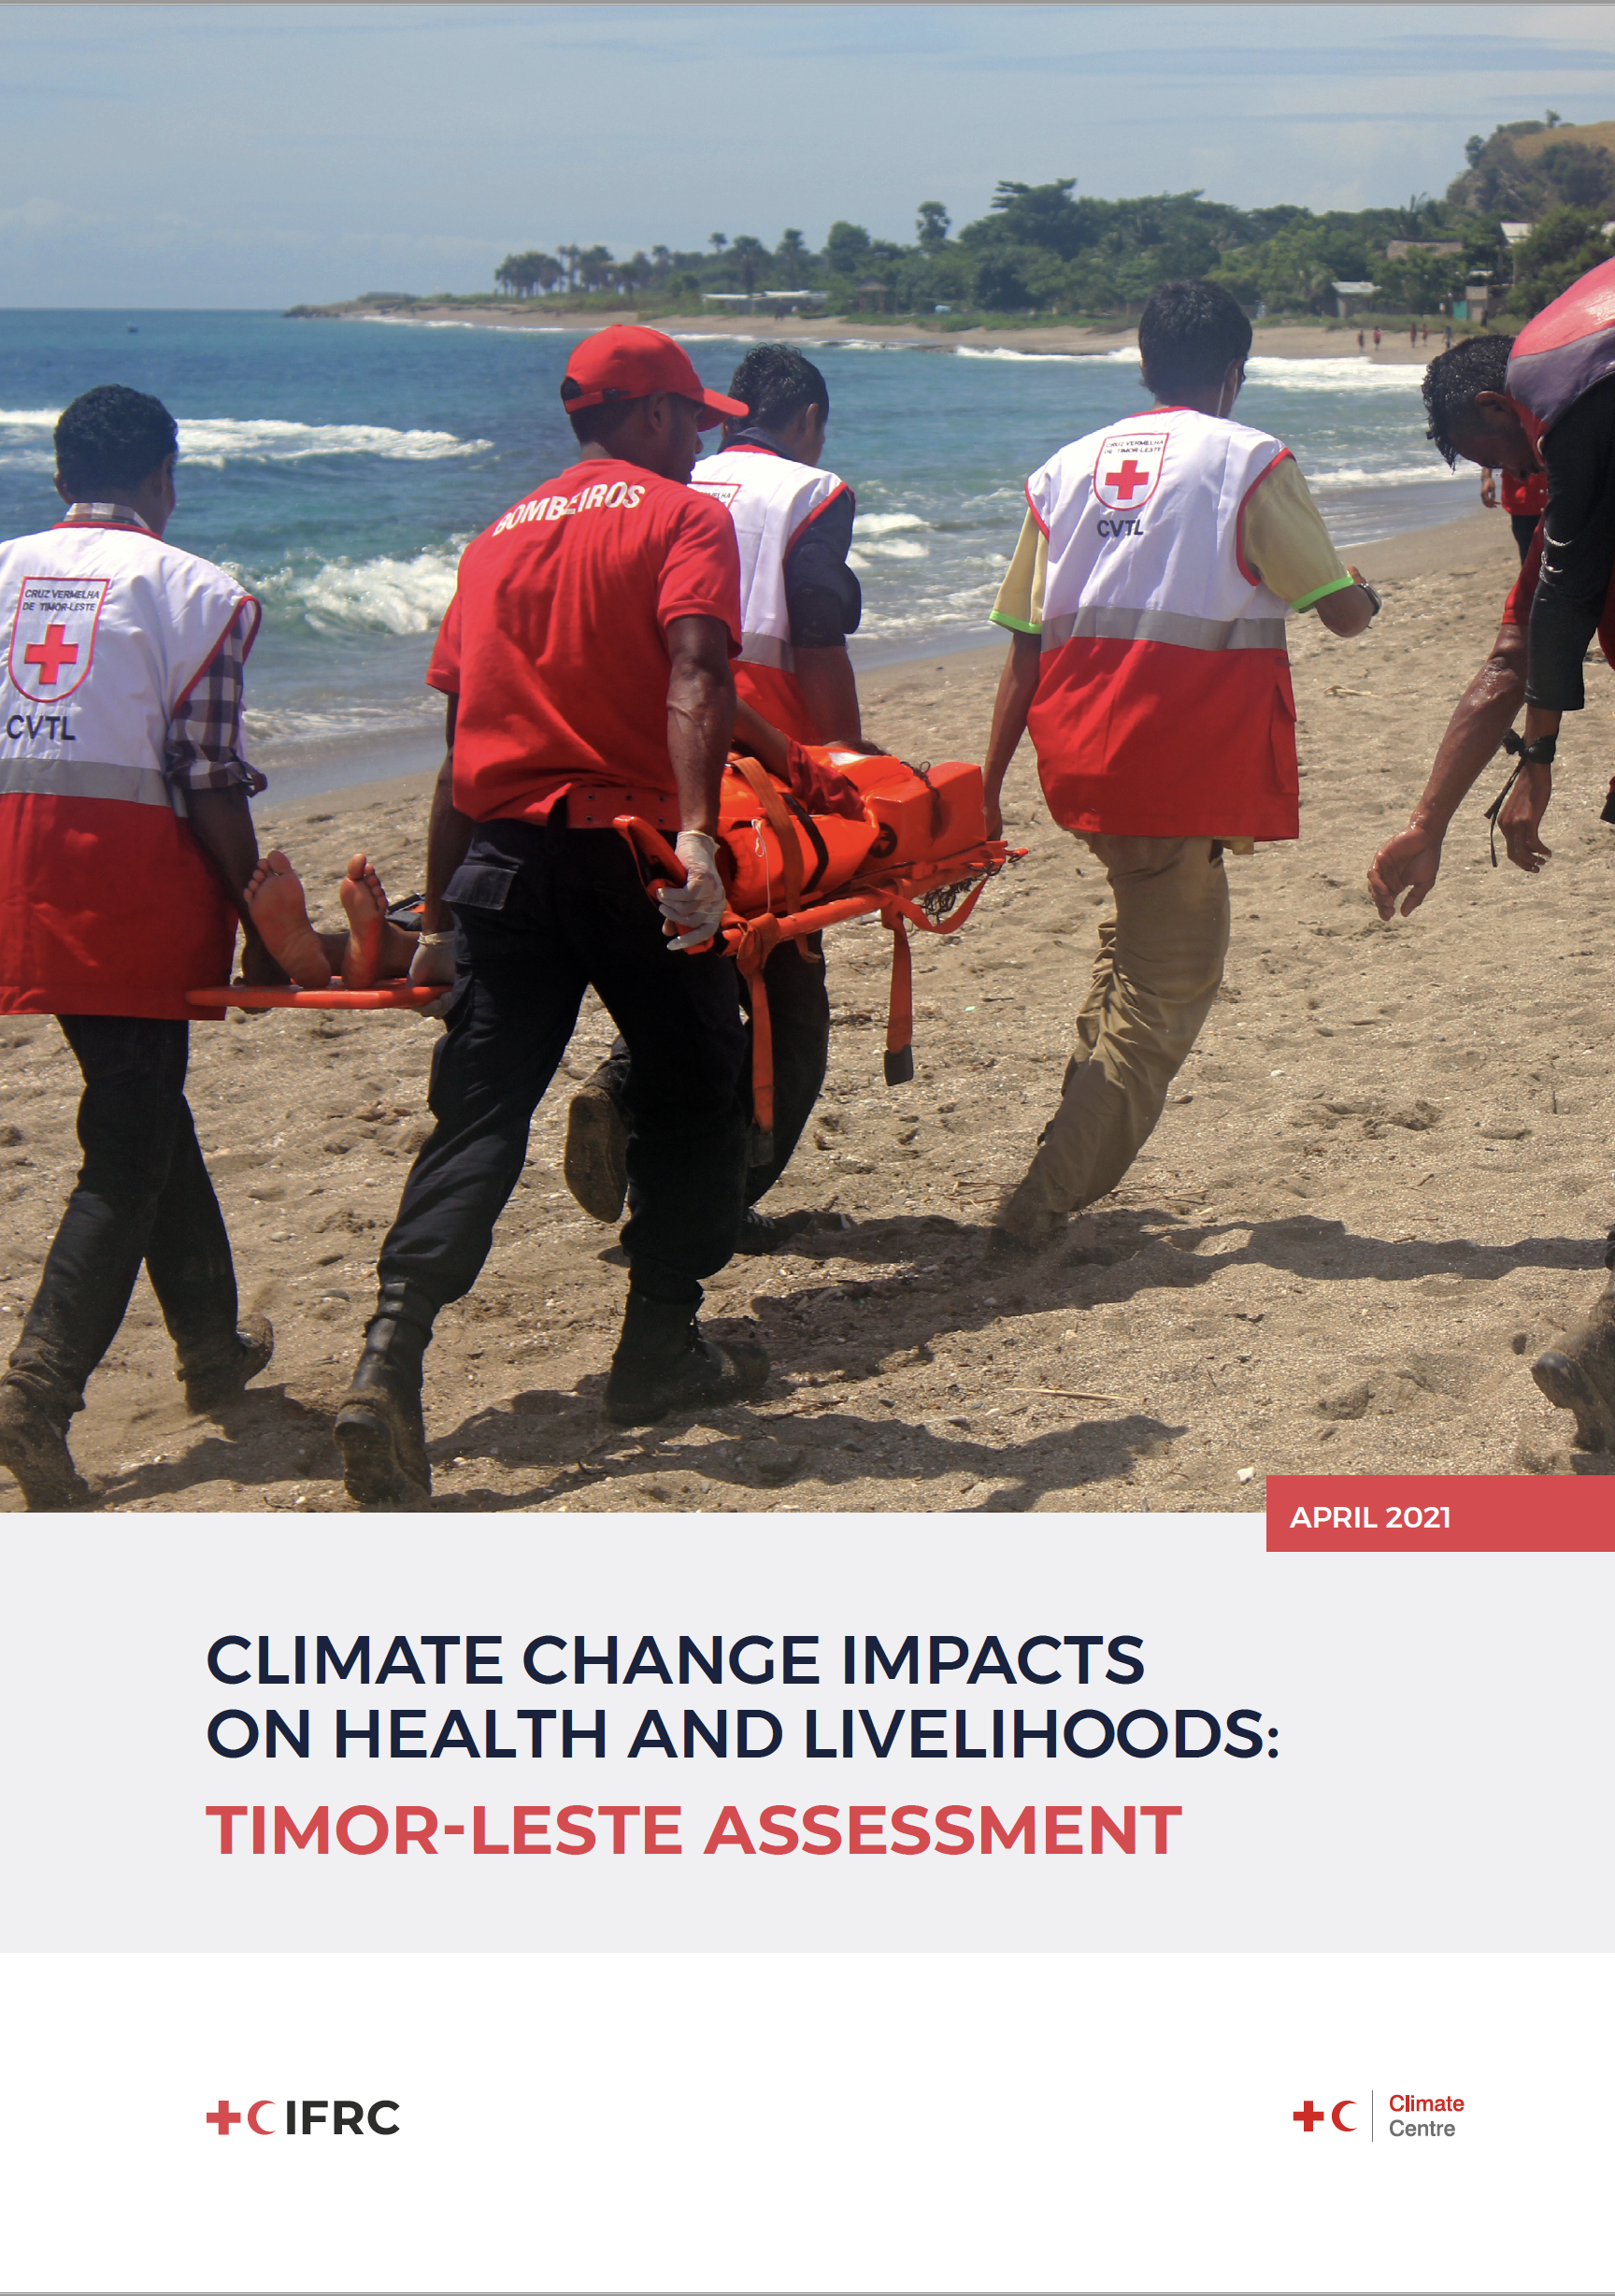 Climate Change Impacts on Health and Livelihoods: Timor-Leste Country Assessment